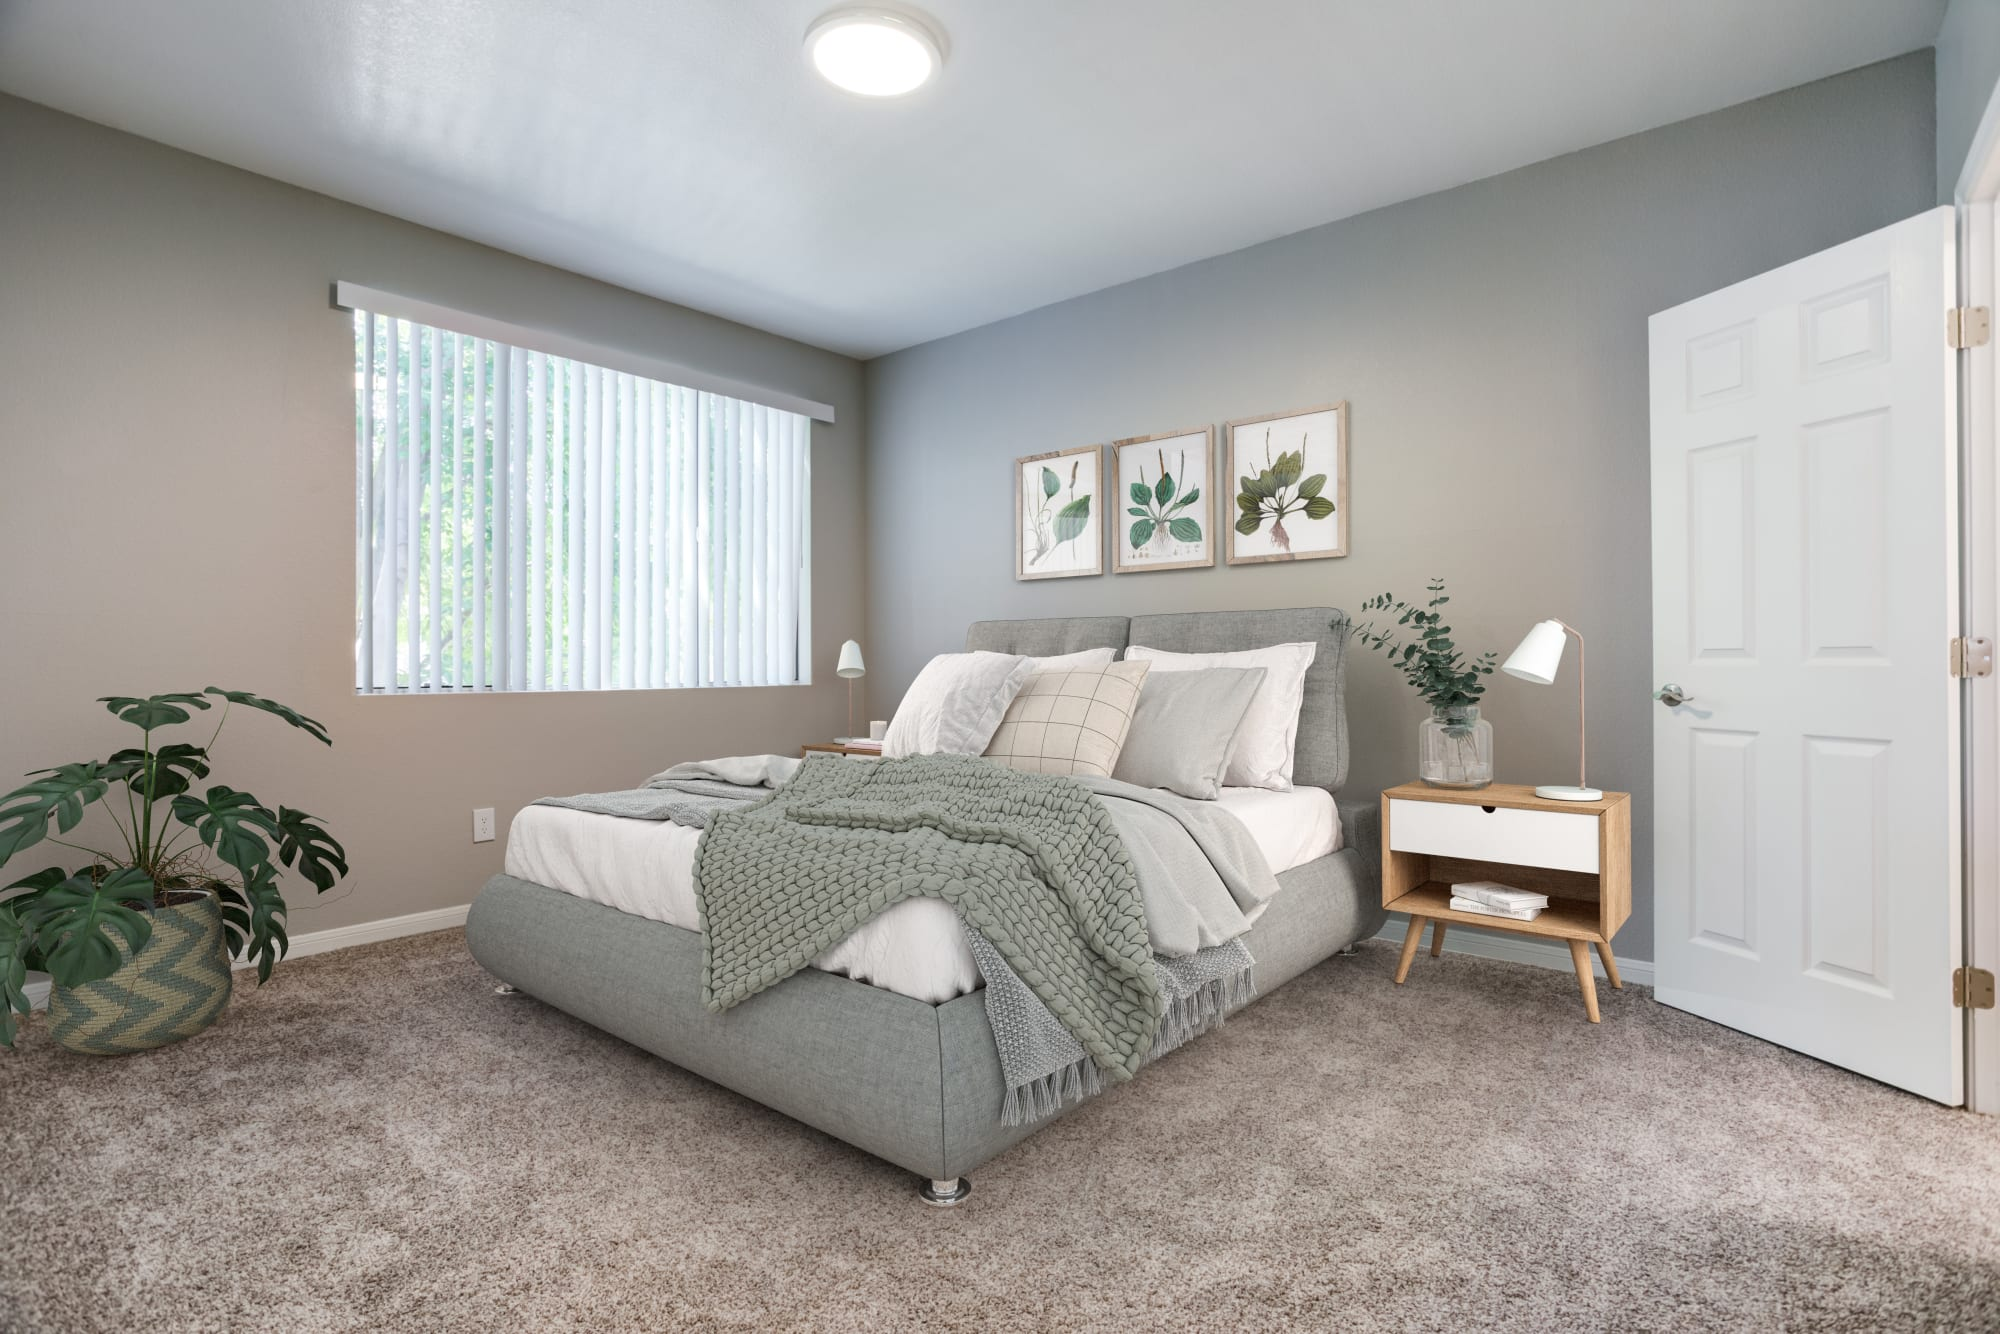 Spacious bedroom at Miramonte and Trovas in Sacramento, California